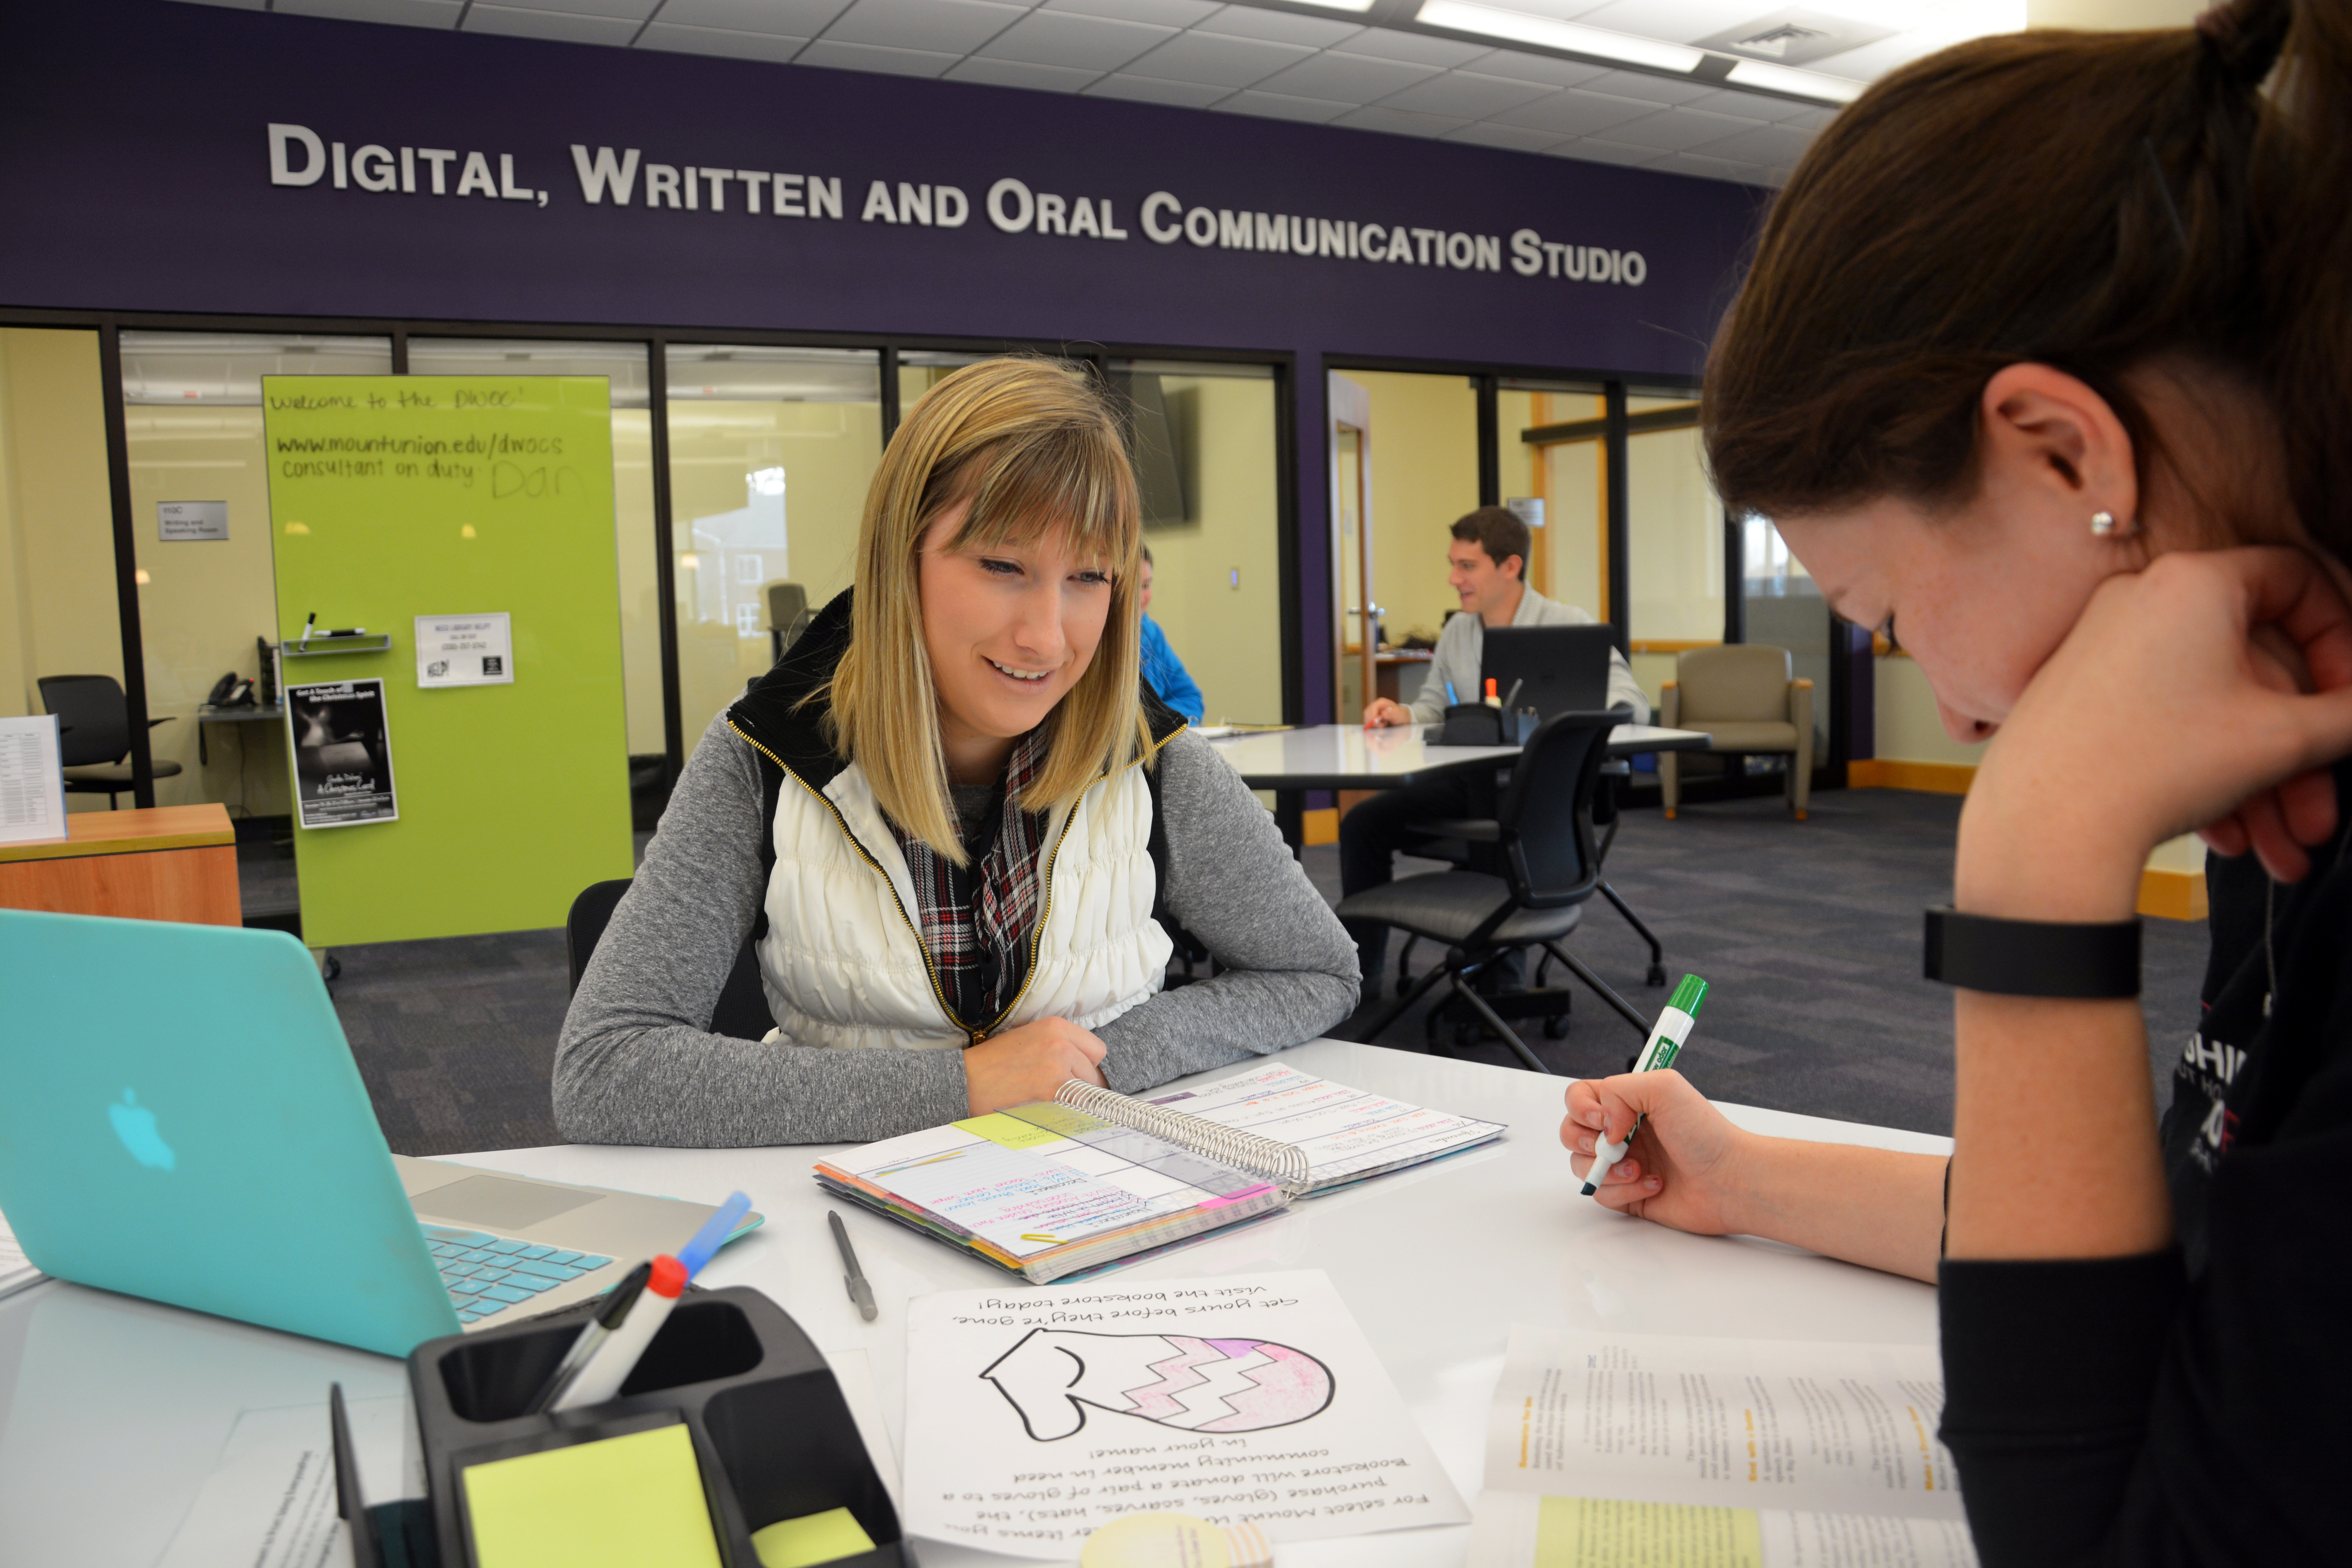 Mount students studying in the DWOC studio.